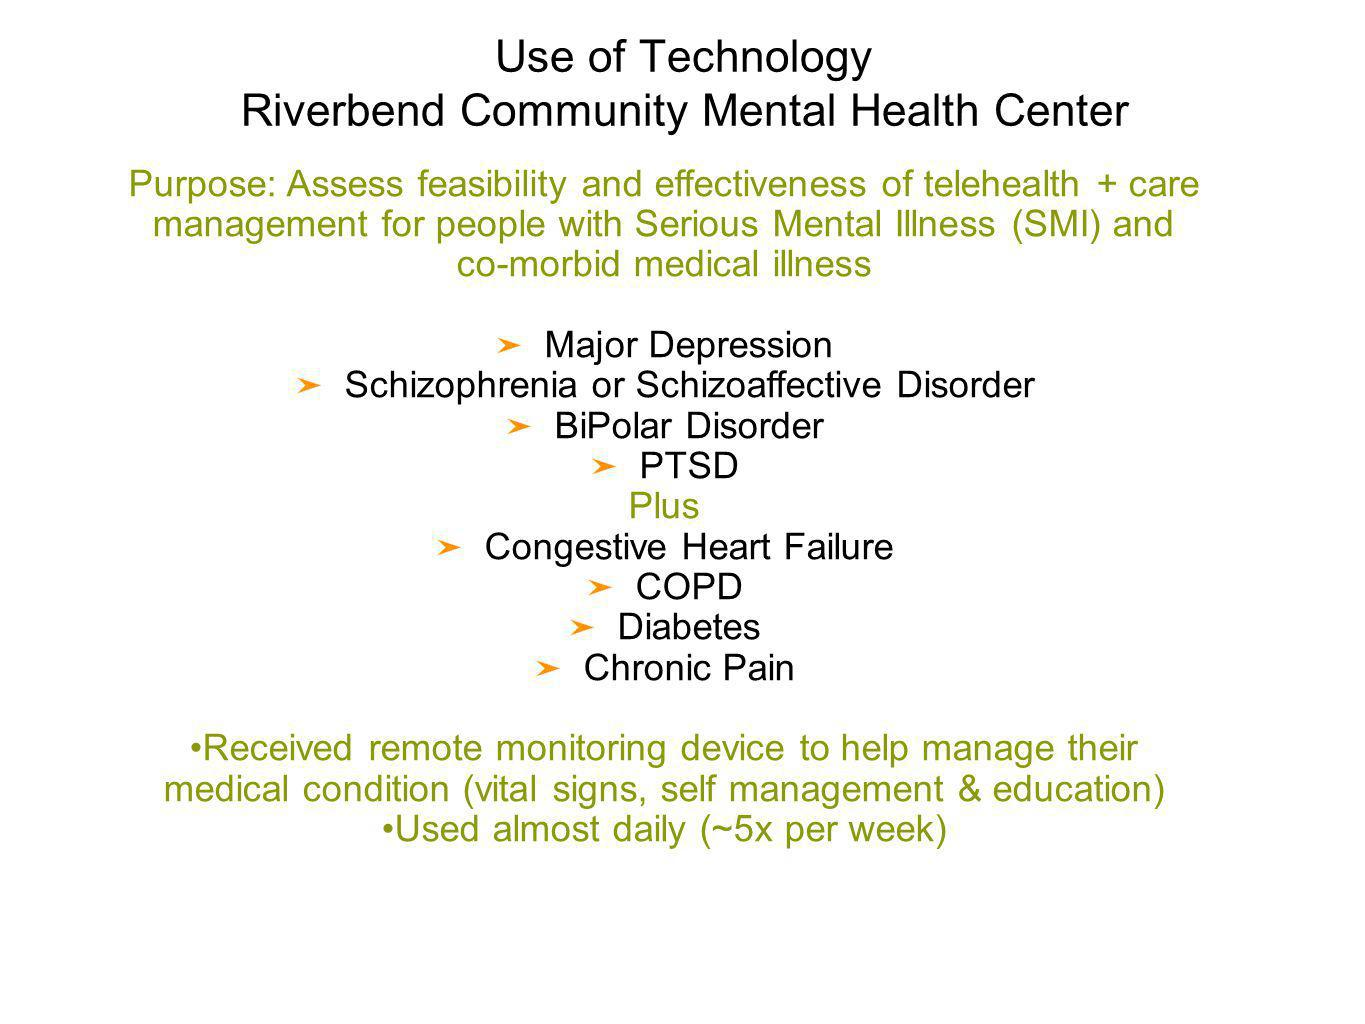 Use of Technology Riverbend Community Mental Health Center Purpose: Assess feasibility and effectiveness of telehealth + care management for people with Serious Mental Illness (SMI) and co-morbid medical illness Major Depression Schizophrenia or Schizoaffective Disorder BiPolar Disorder PTSD Plus Congestive Heart Failure COPD Diabetes Chronic Pain Received remote monitoring device to help manage their medical condition (vital signs, self management & education) Used almost daily (~5x per week)